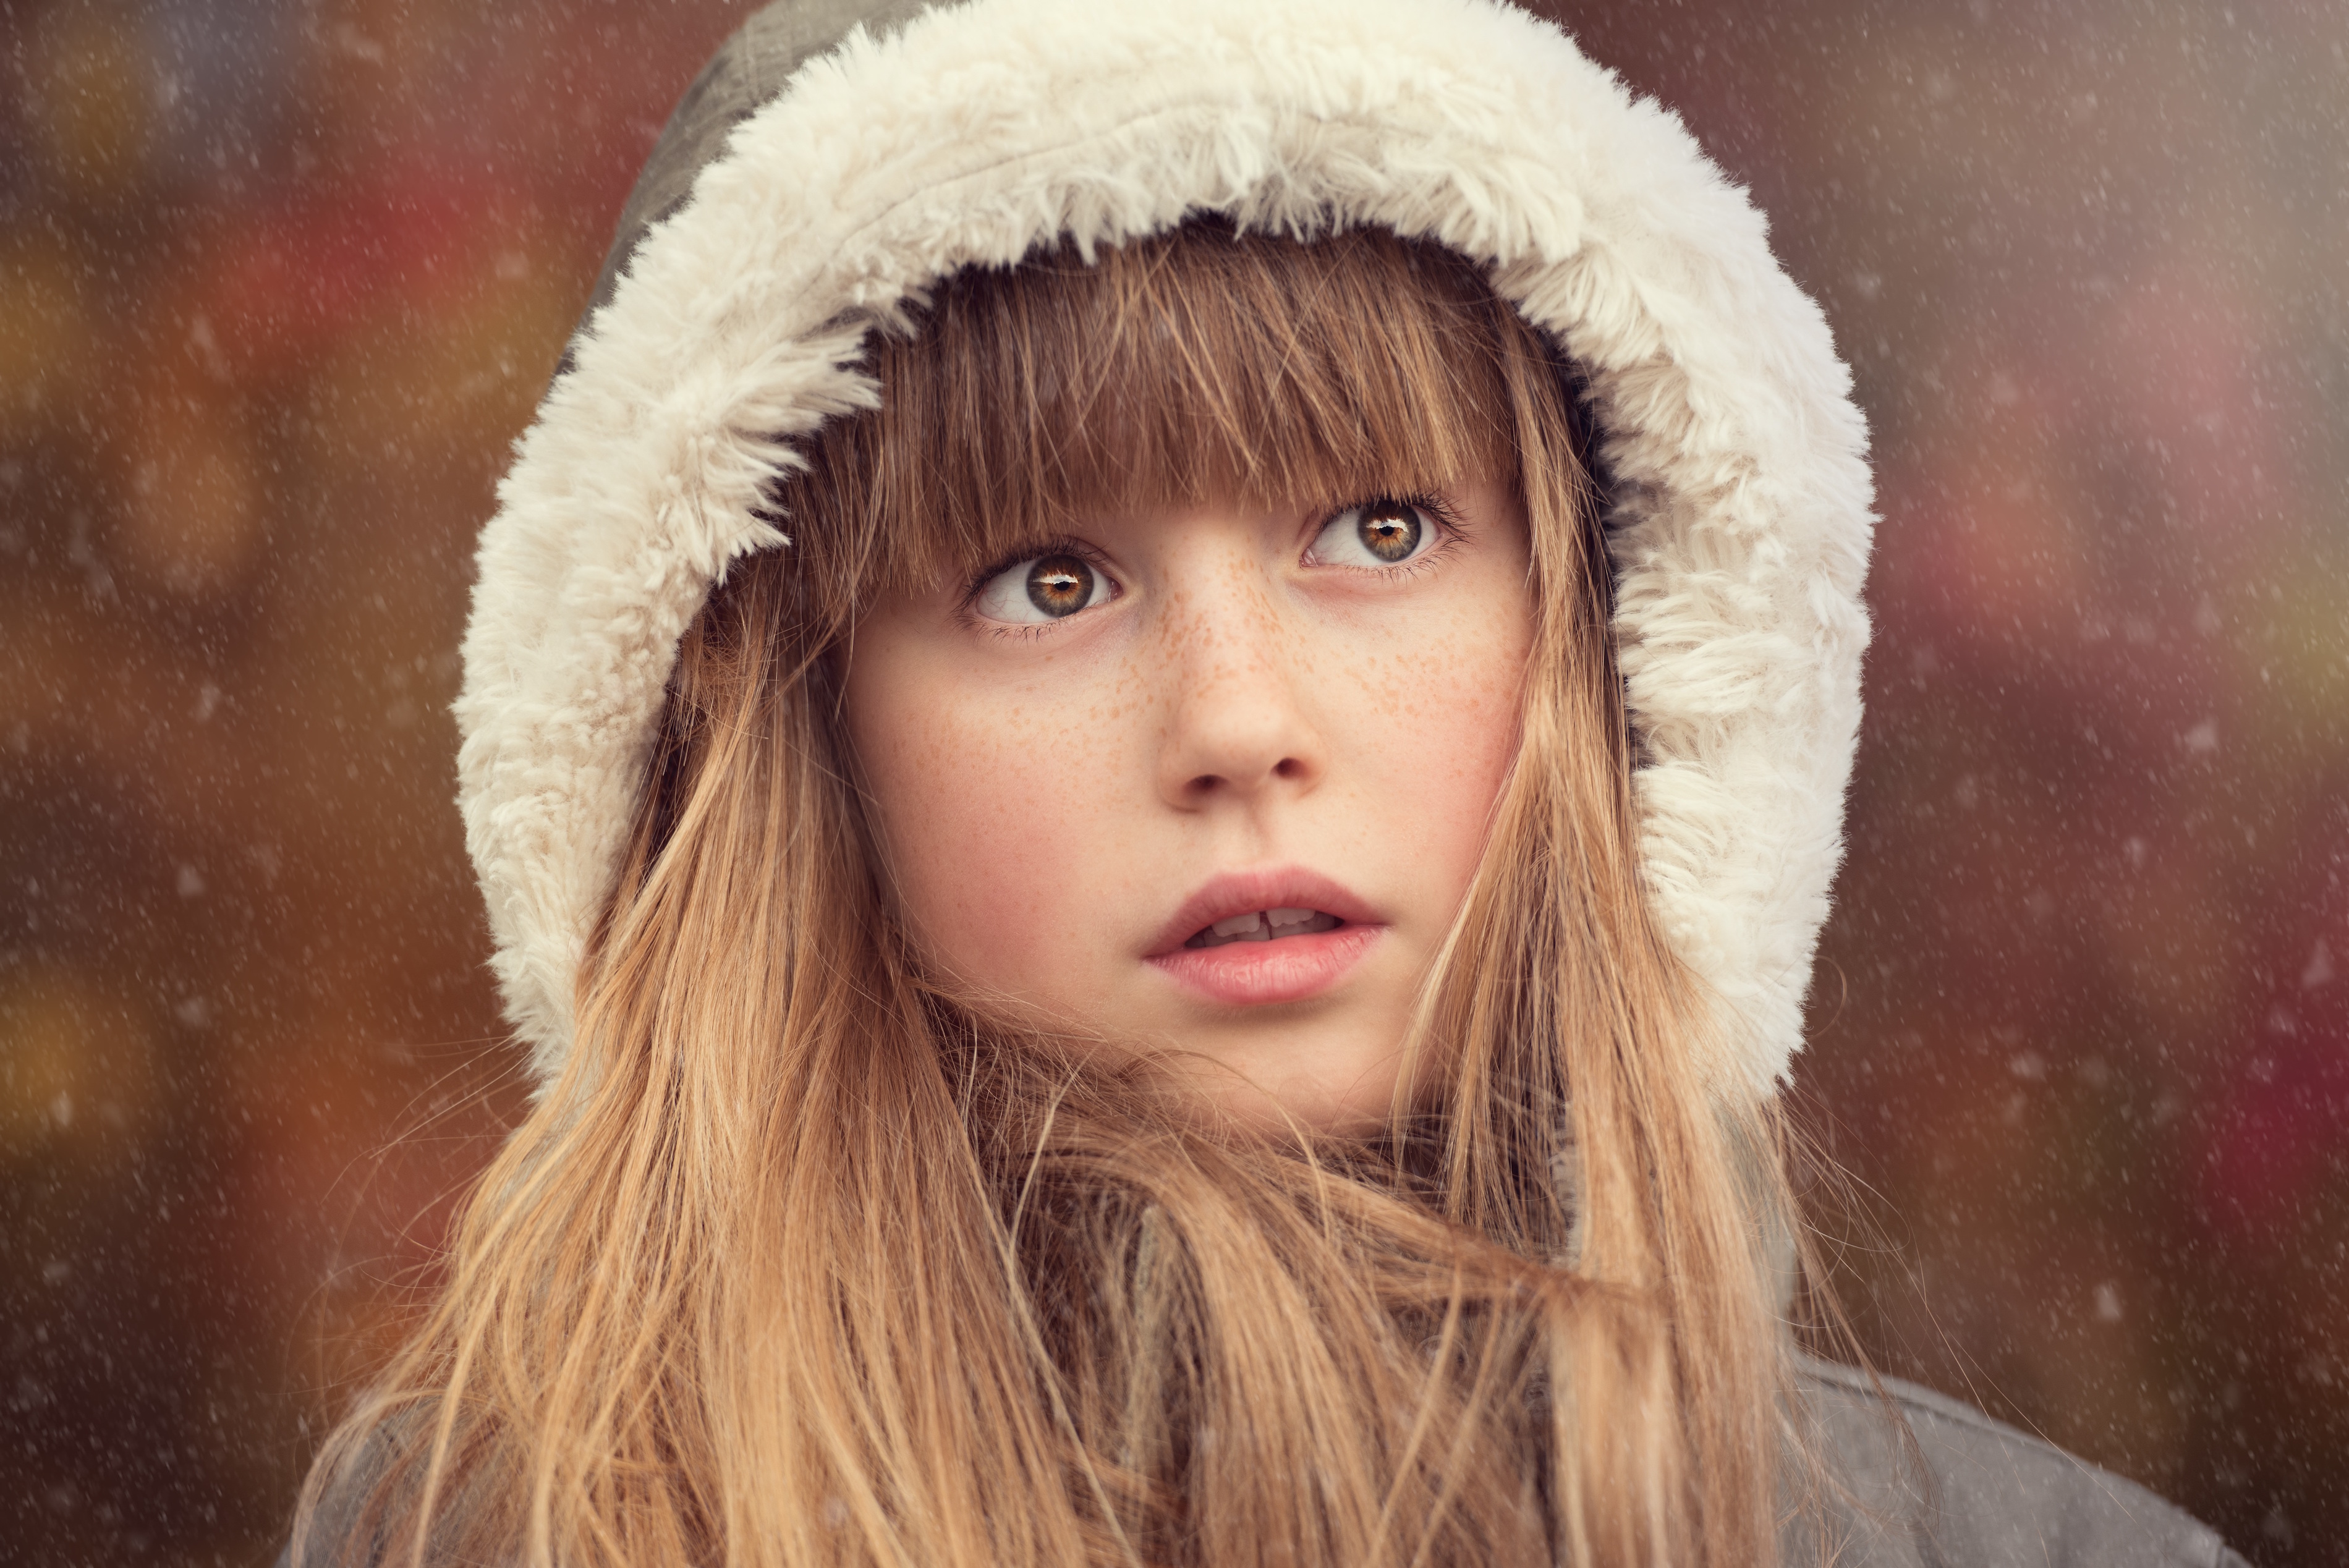 * Young Girl in Winter Looking Up 3800x